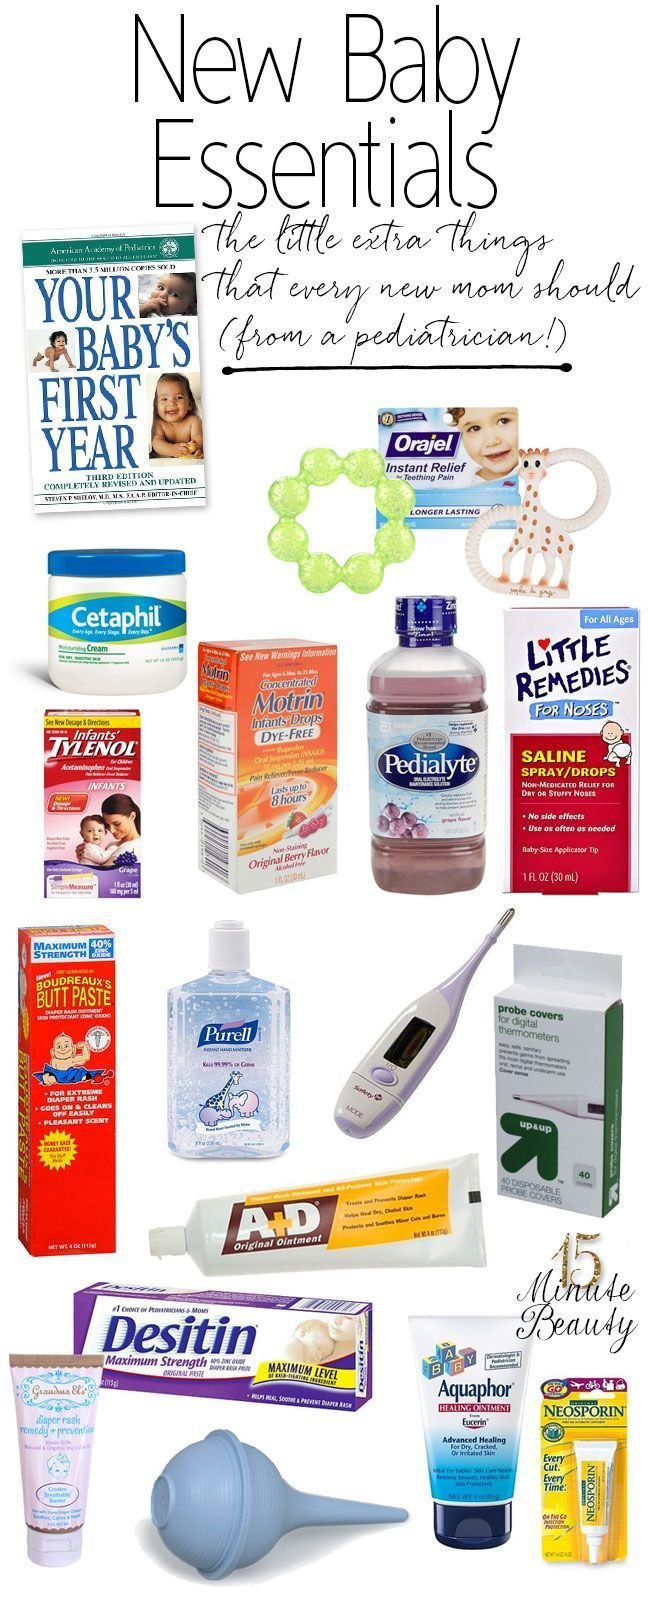 Everything your new baby needs from the pharmacy for their medicine cabinet, a great list from a pediatrician!